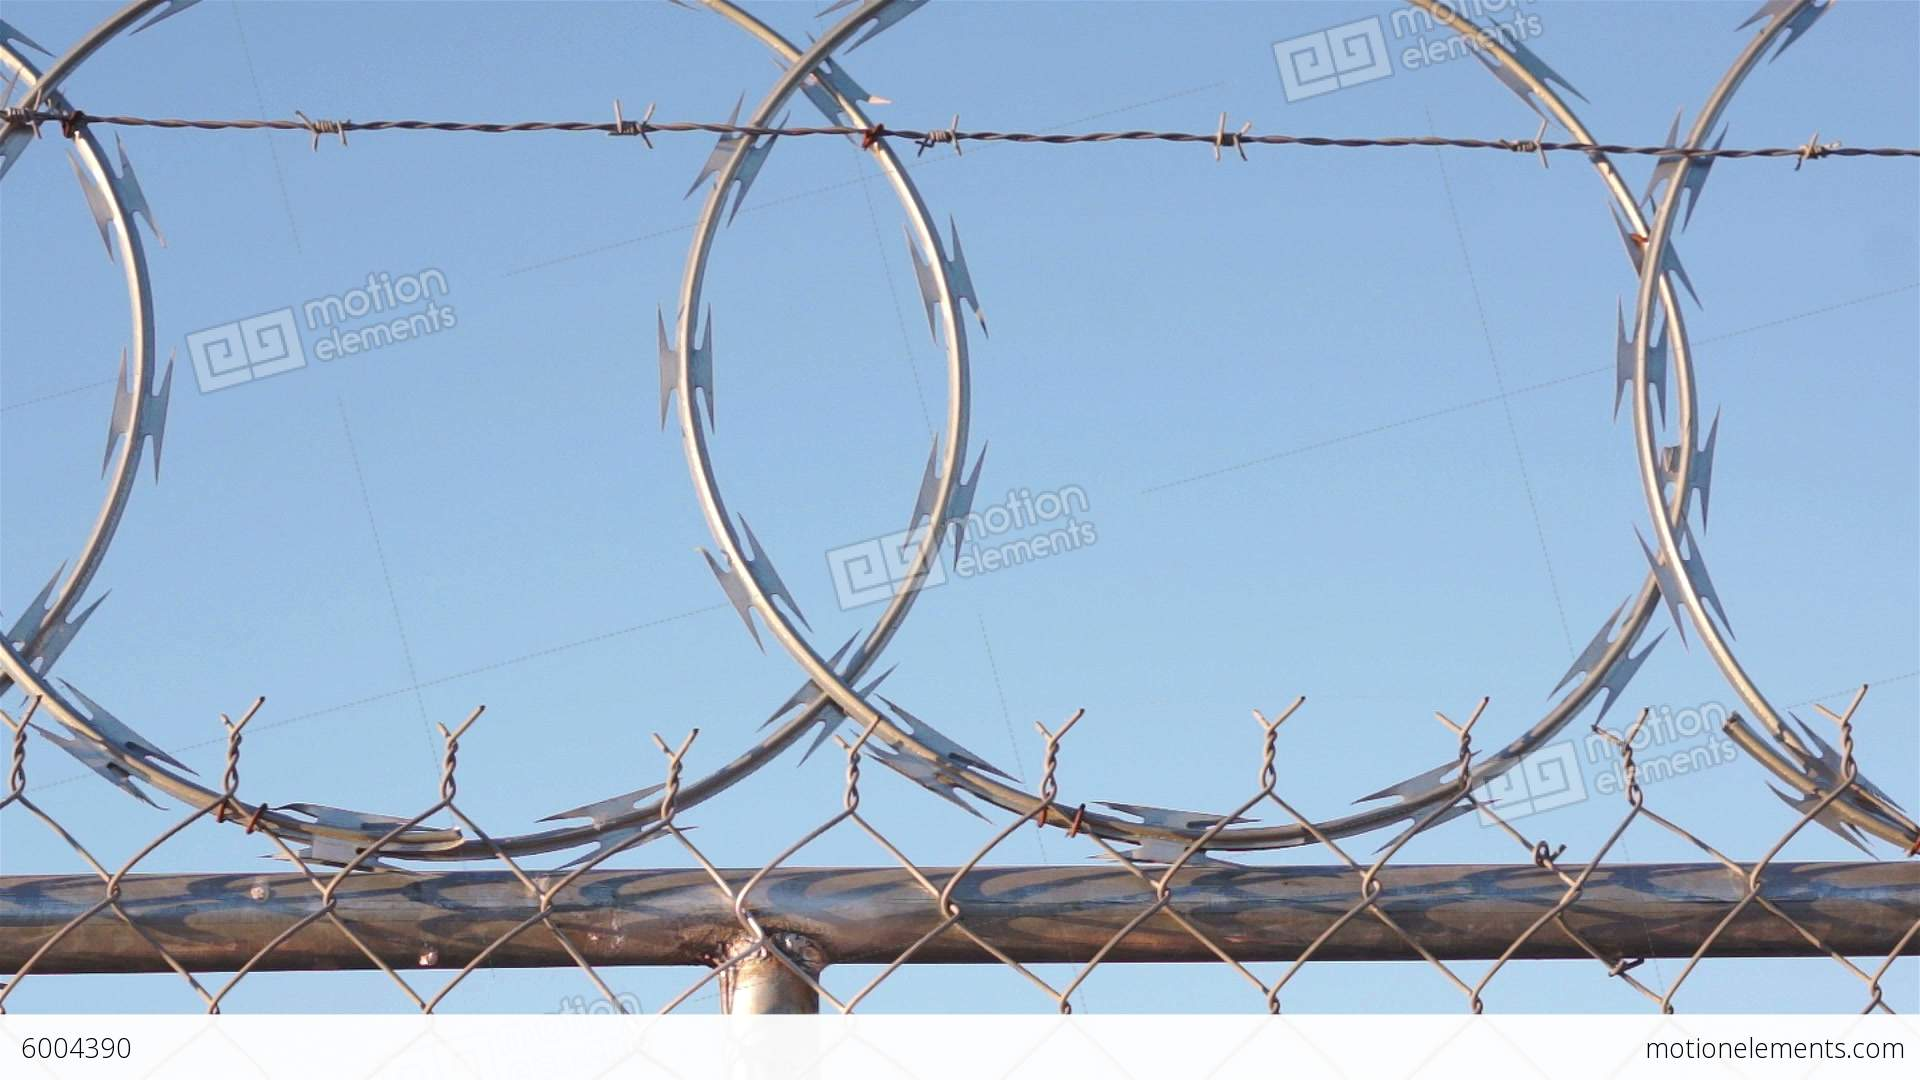 Woman Climing Razor Wire Fence Stock video footage   6004390